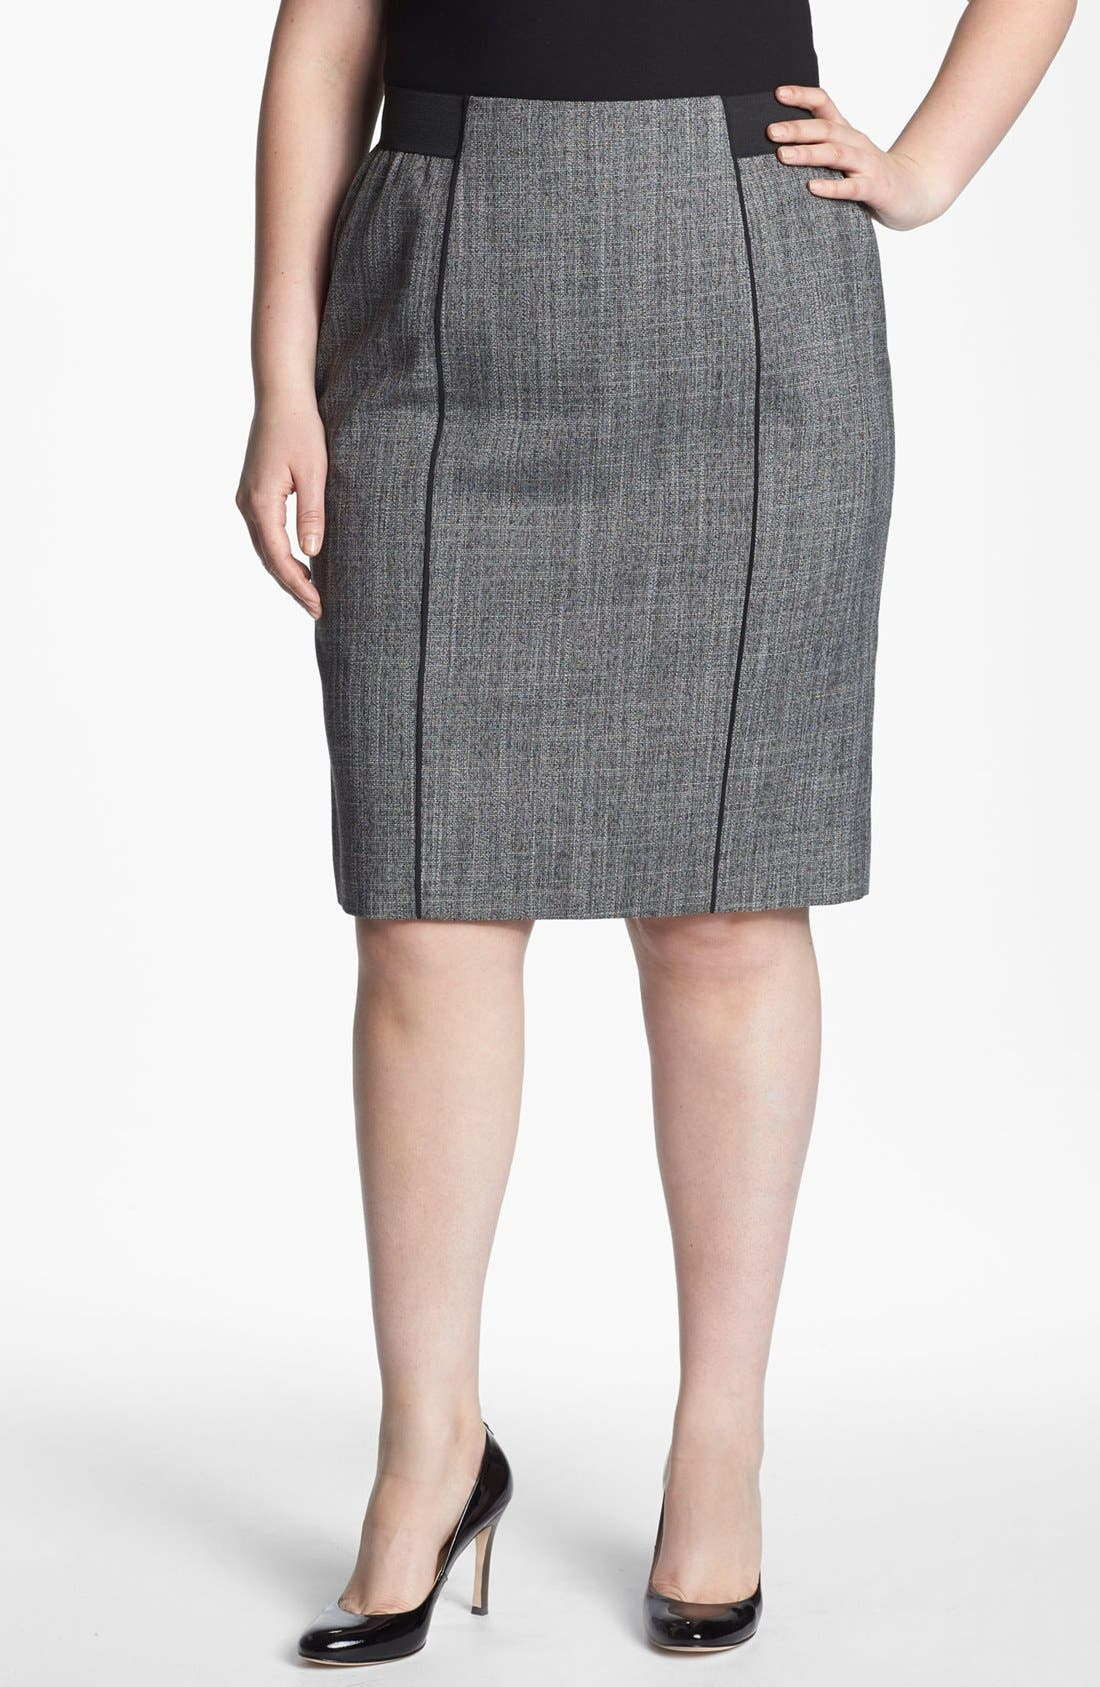 Alternate Image 1 Selected - Sejour 'Gibson' Piped Pencil Skirt (Plus Size)